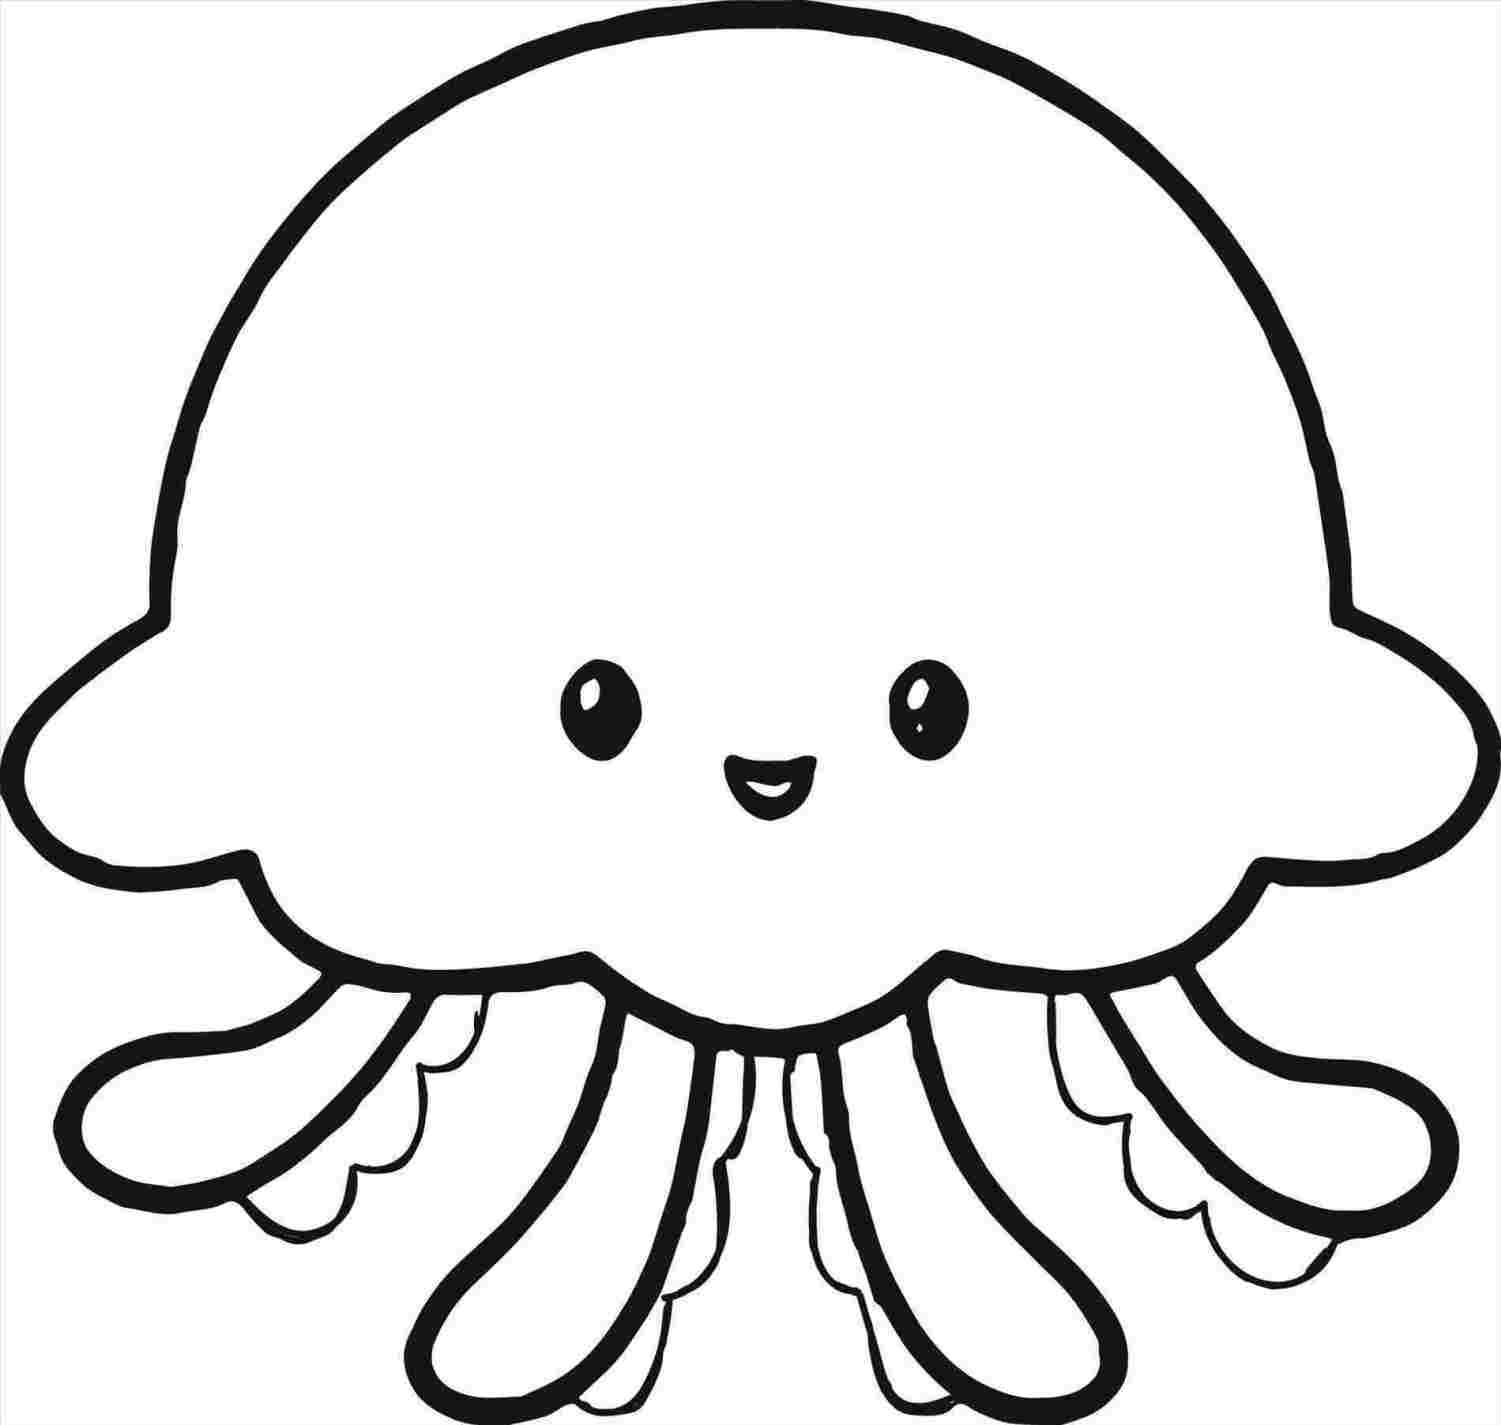 1501x1425 Easy Picture Of A Jelly Fish To Draw